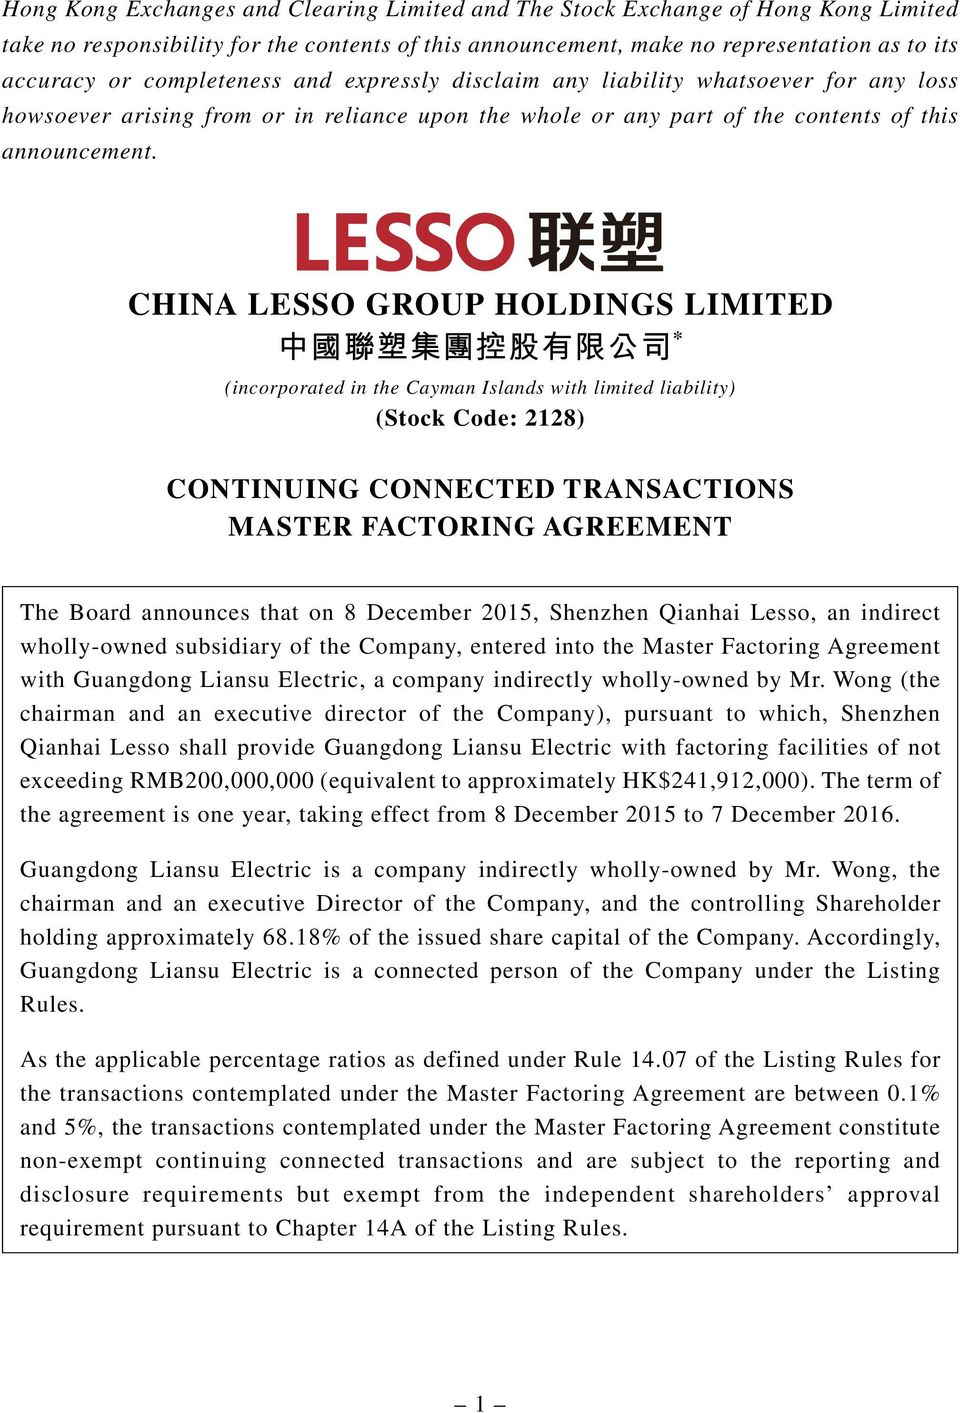 CHINA LESSO GROUP HOLDINGS LIMITED * (incorporated in the Cayman Islands with limited liability) (Stock Code: 2128) CONTINUING CONNECTED TRANSACTIONS MASTER FACTORING AGREEMENT The Board announces